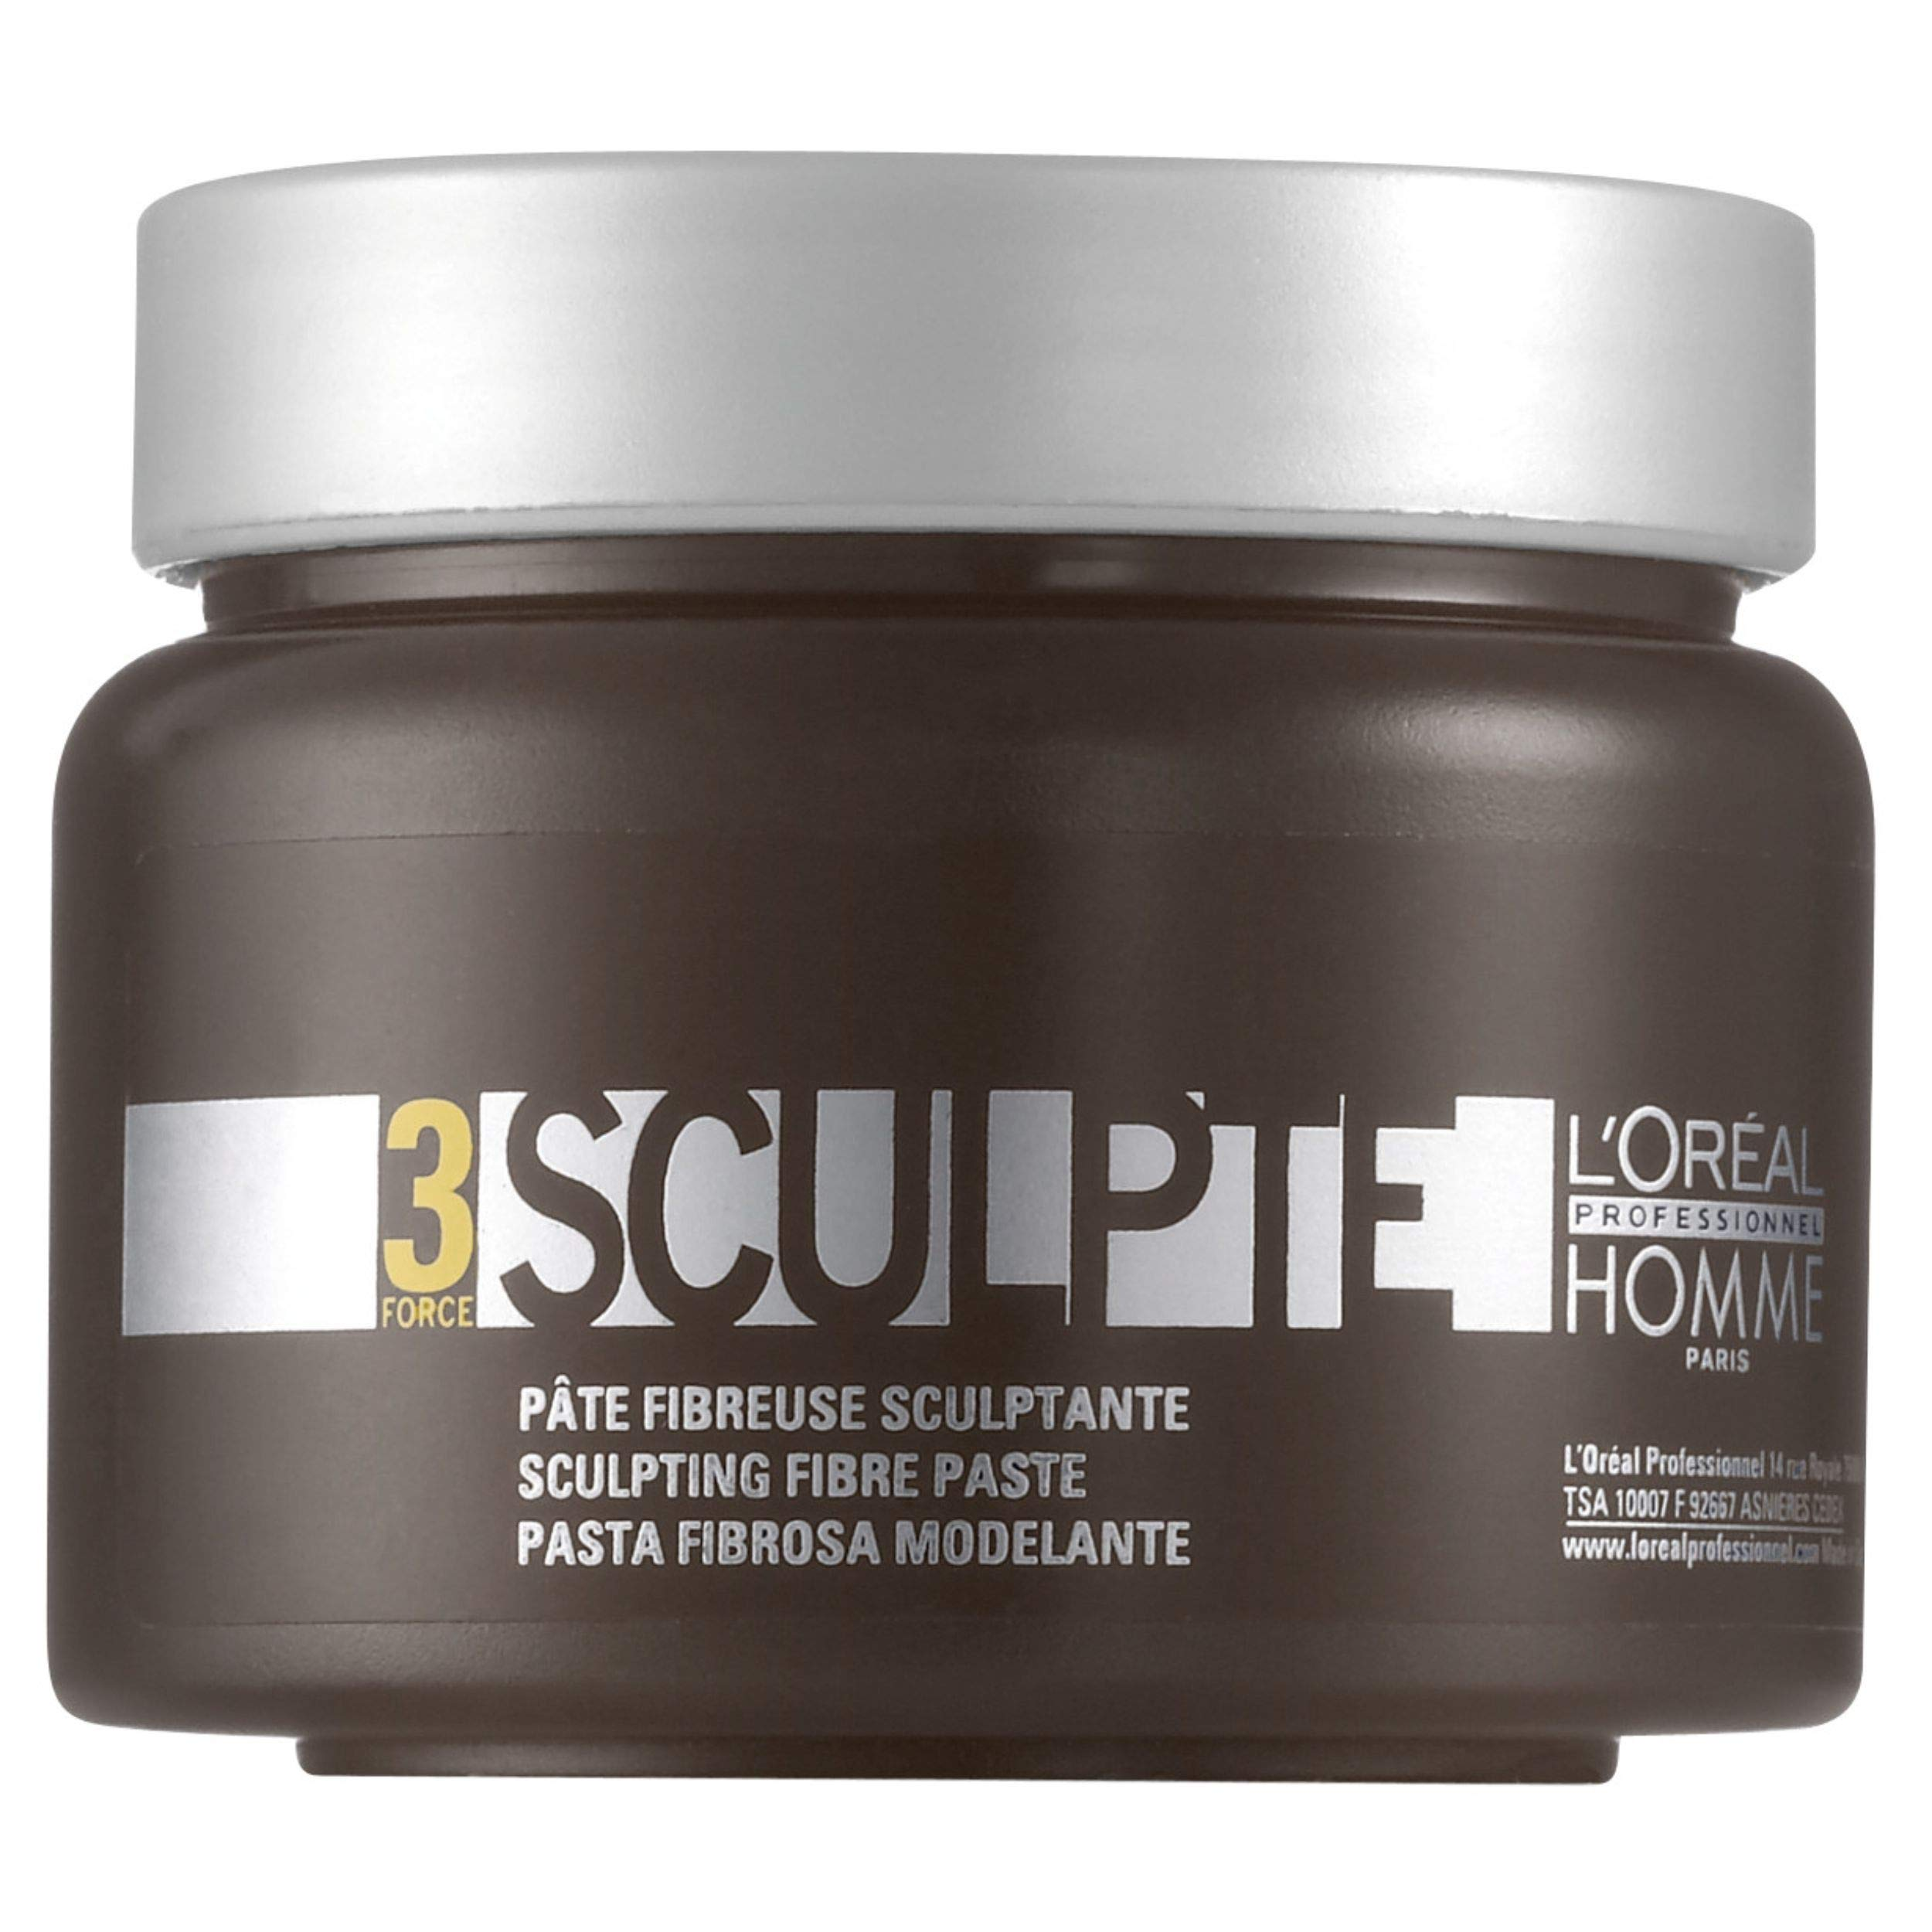 L'Oréal Professionnel - Hair Sculpting Fibrous Paste - Sculpted - 150 ml